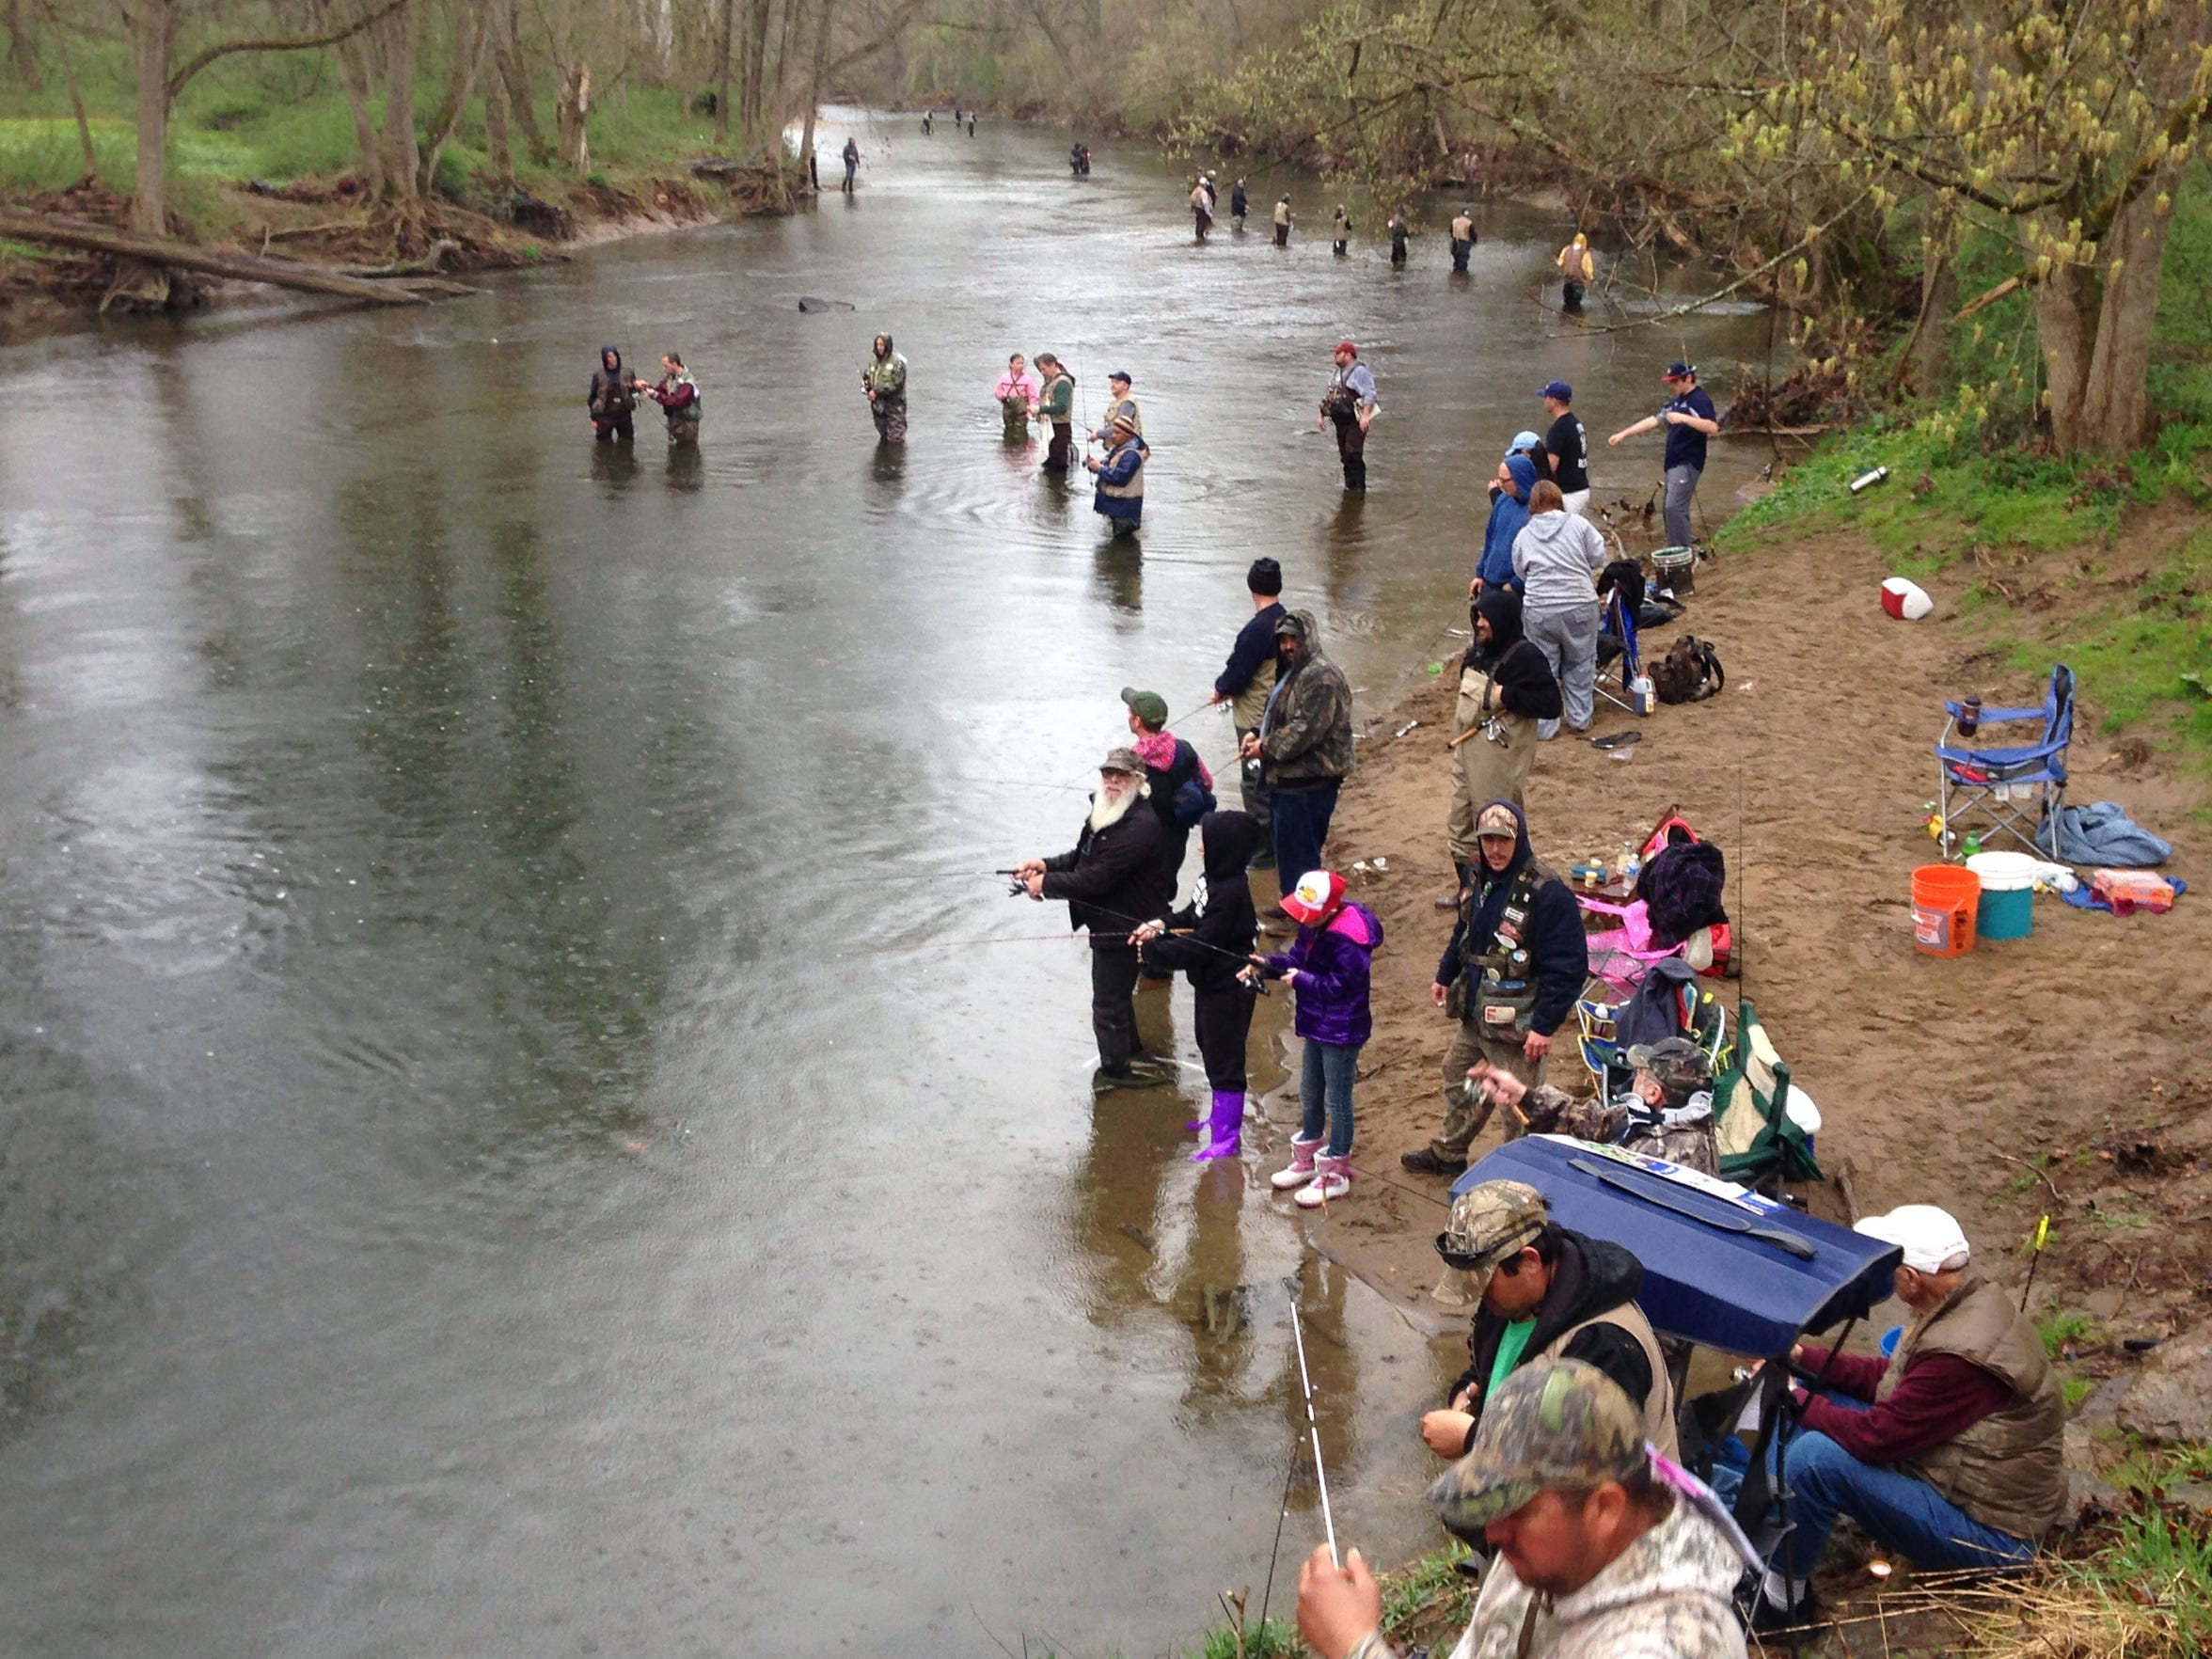 Anglers at White Clay Creek in Newark set their sites on reeling in trout on the opening day of trout season in New Castle County.